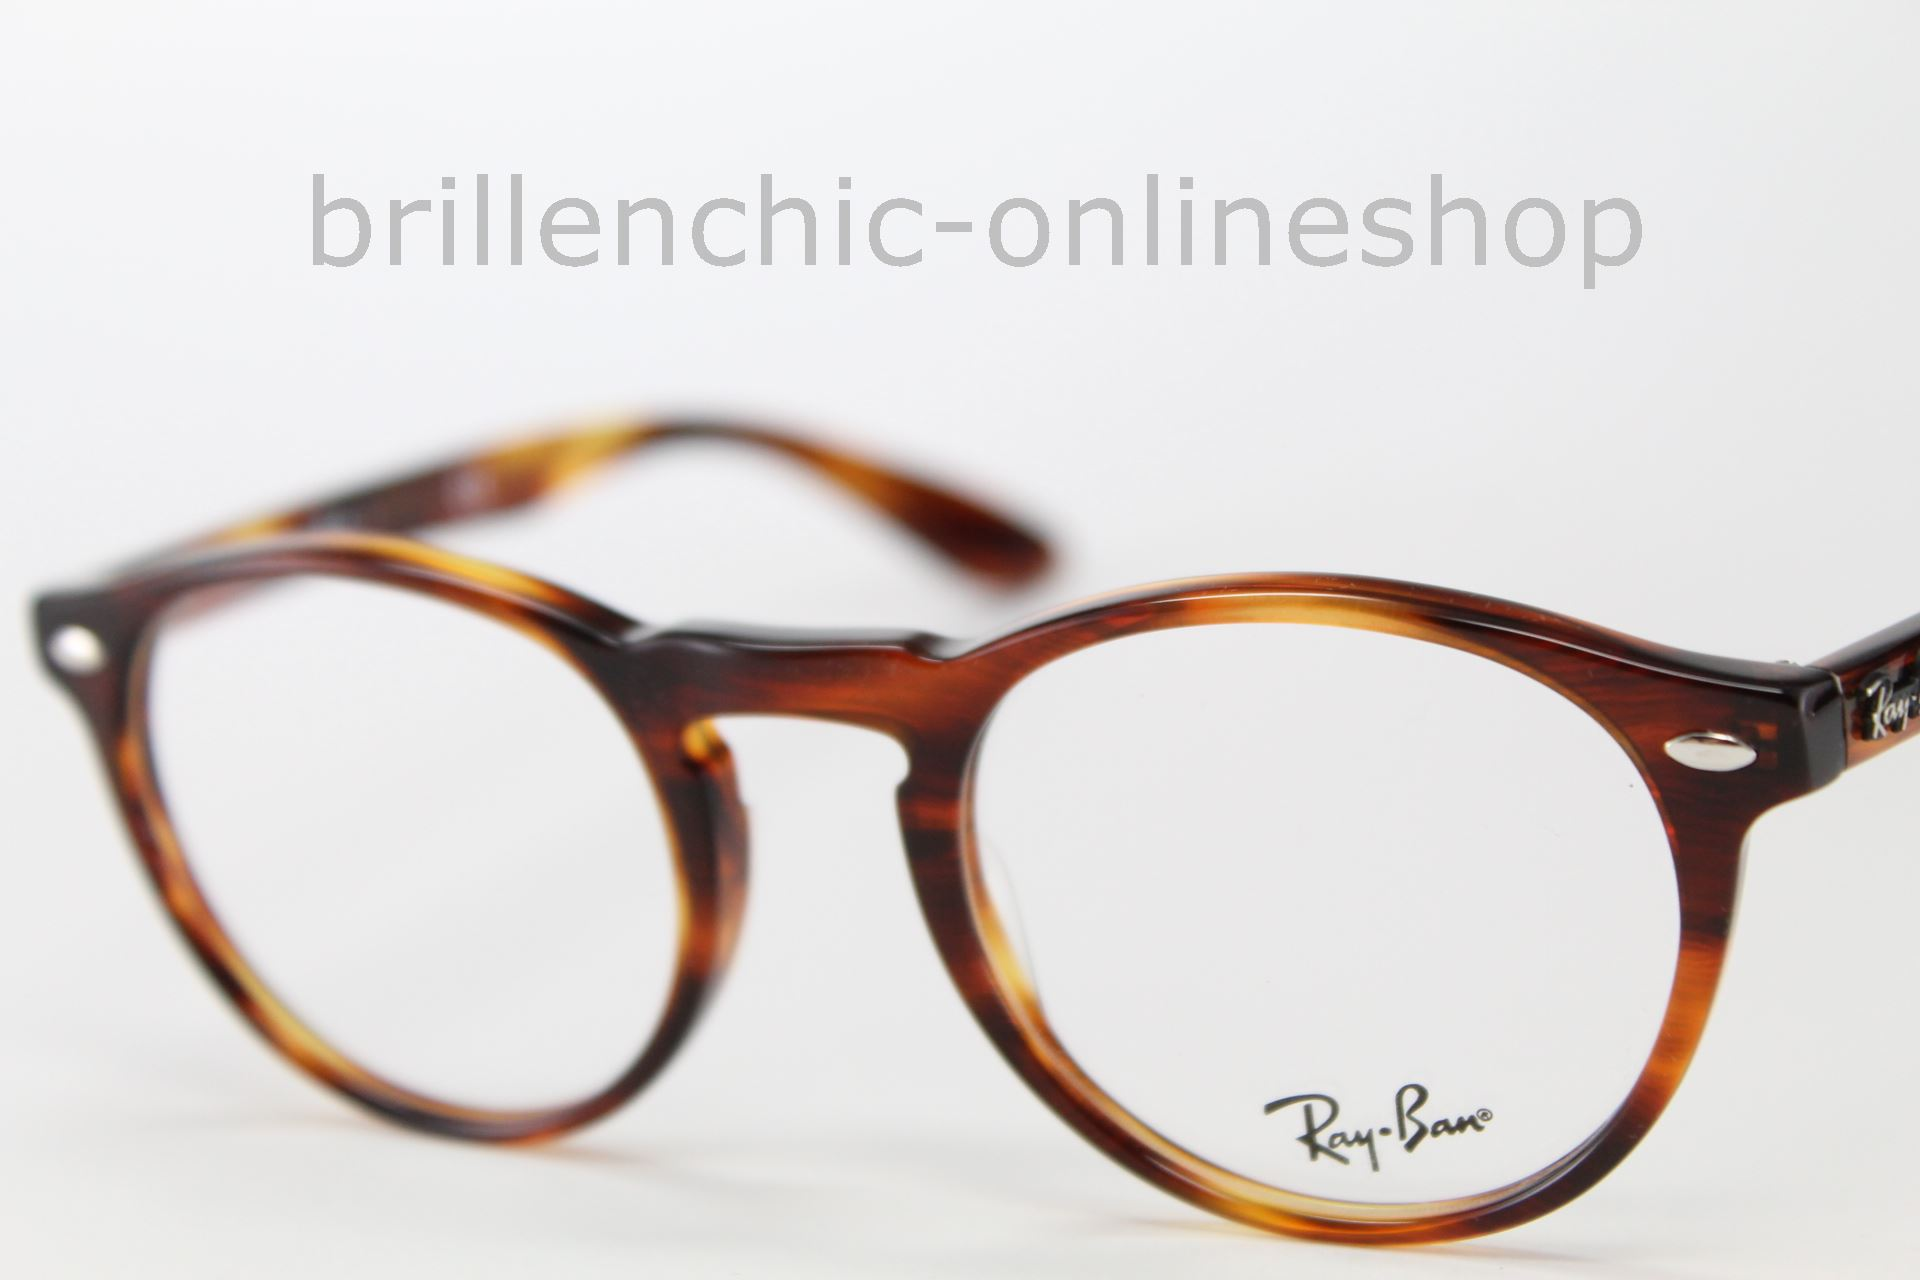 b26cd6df020 Brillenchic-onlineshop in Berlin - Ray Ban RB 5283 2144